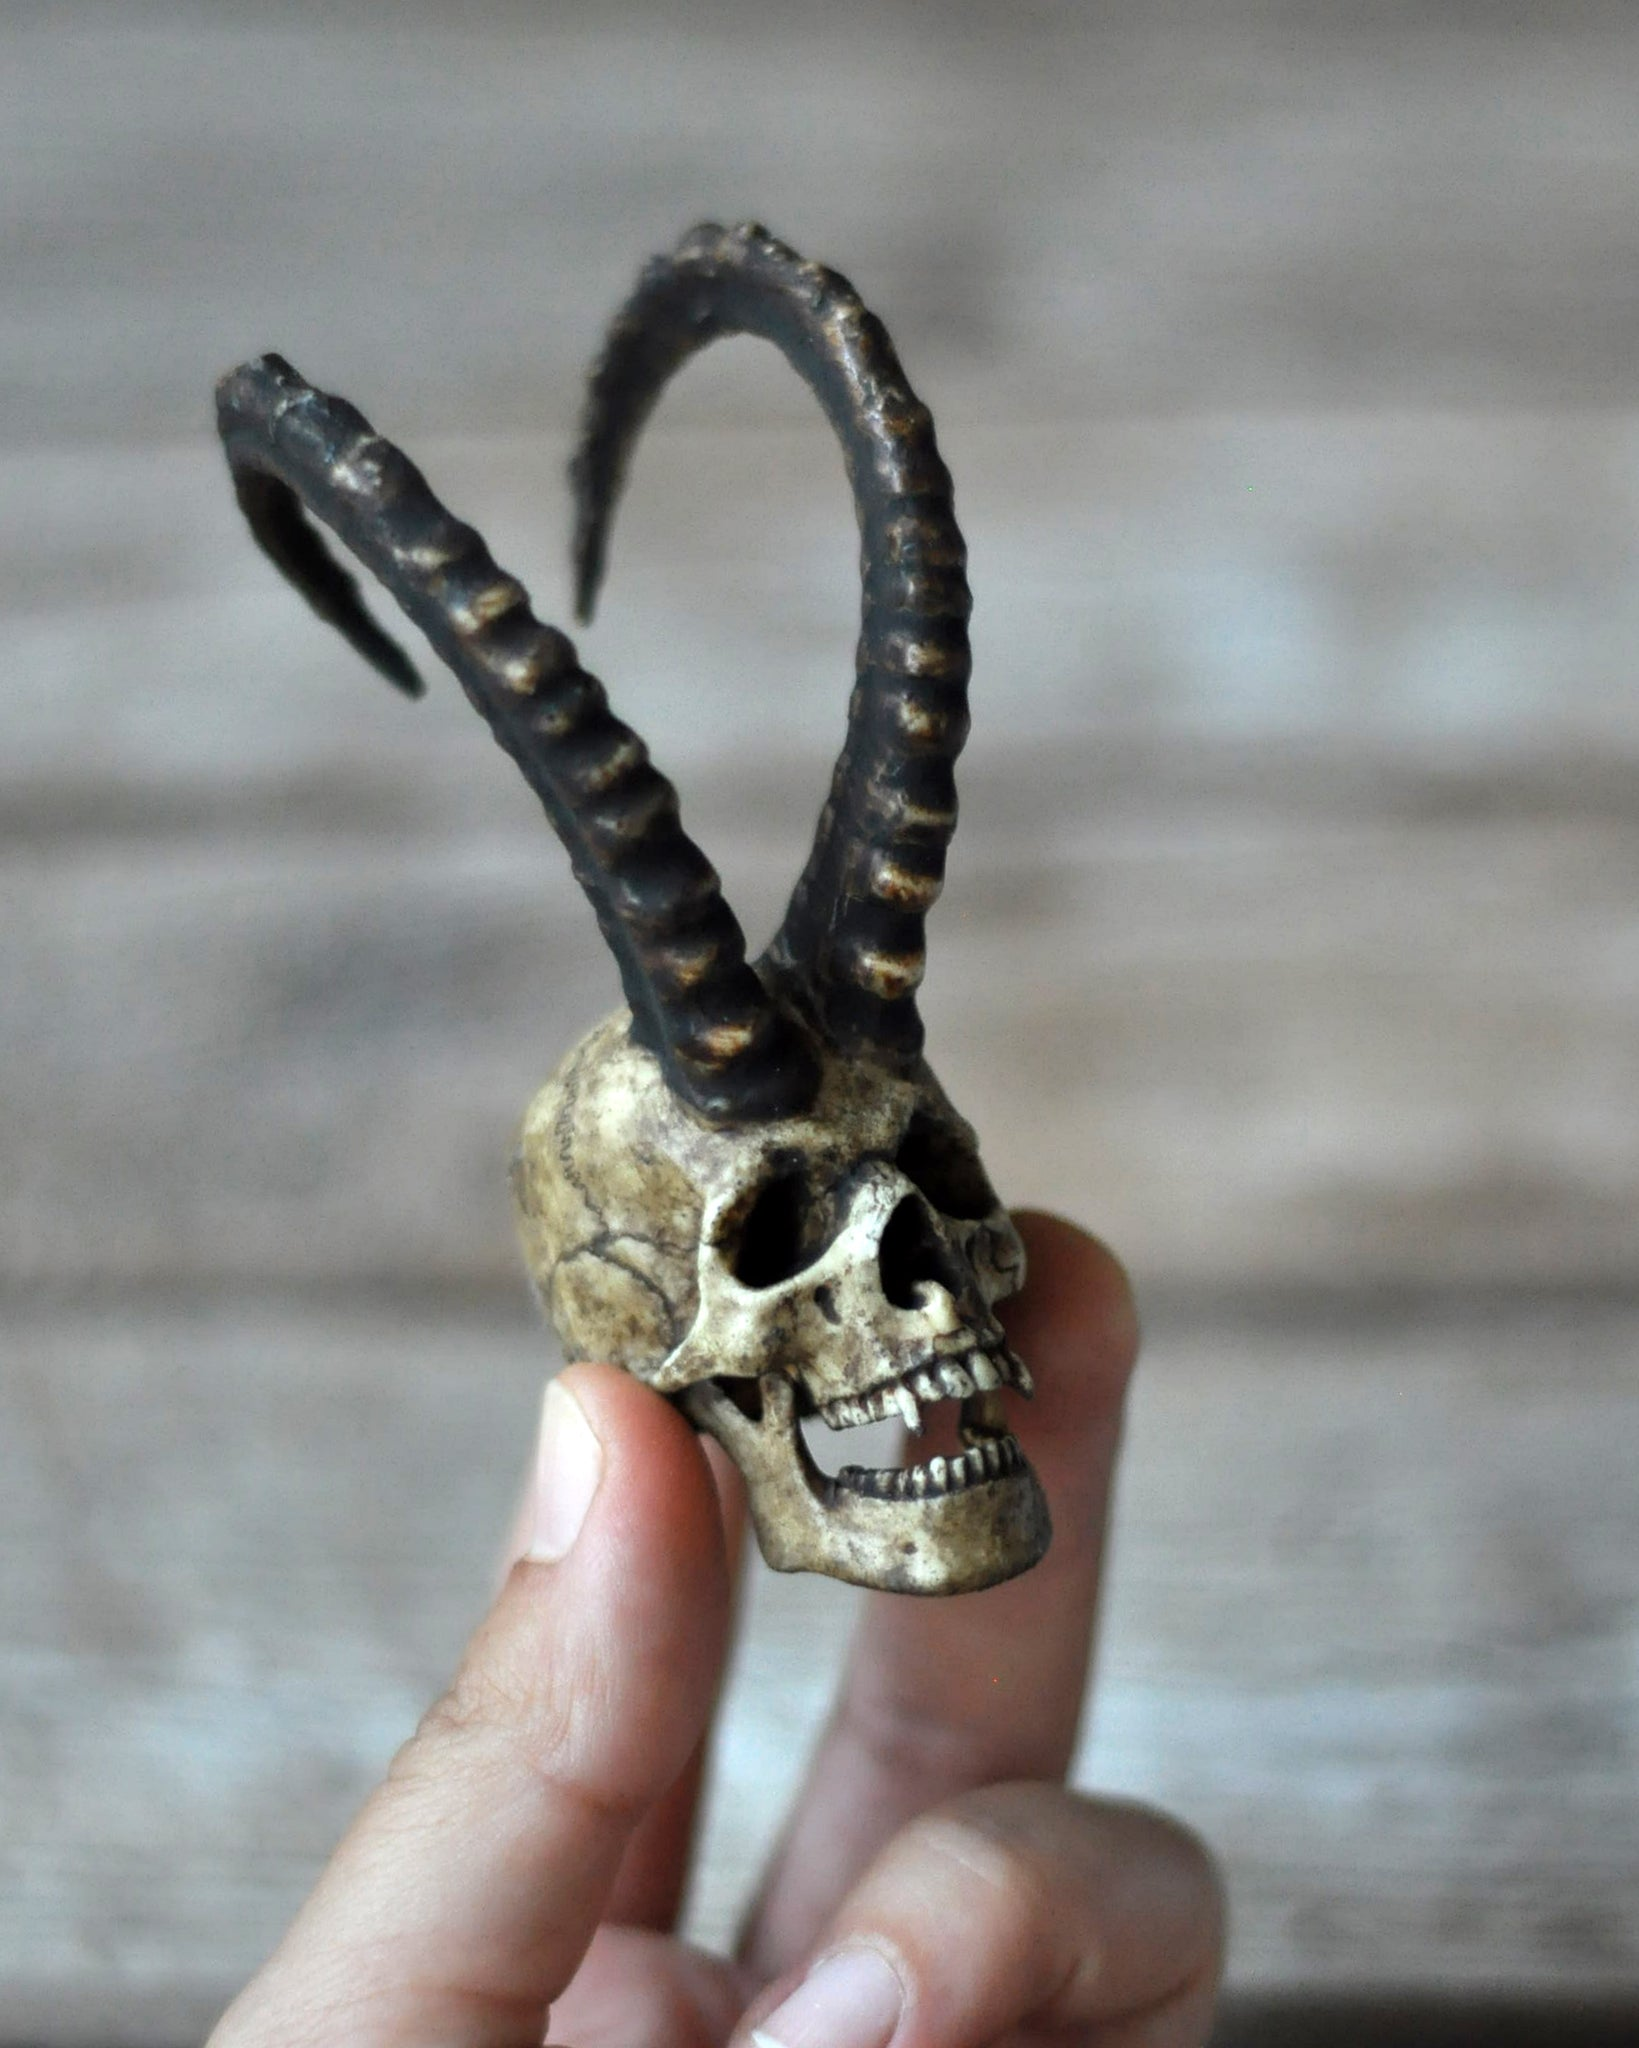 High Detailed Realistic Capricorn Horned Vampire Goat Horned Human Skull, Miniature Skull Art, Gothic Style Decorative Art Object